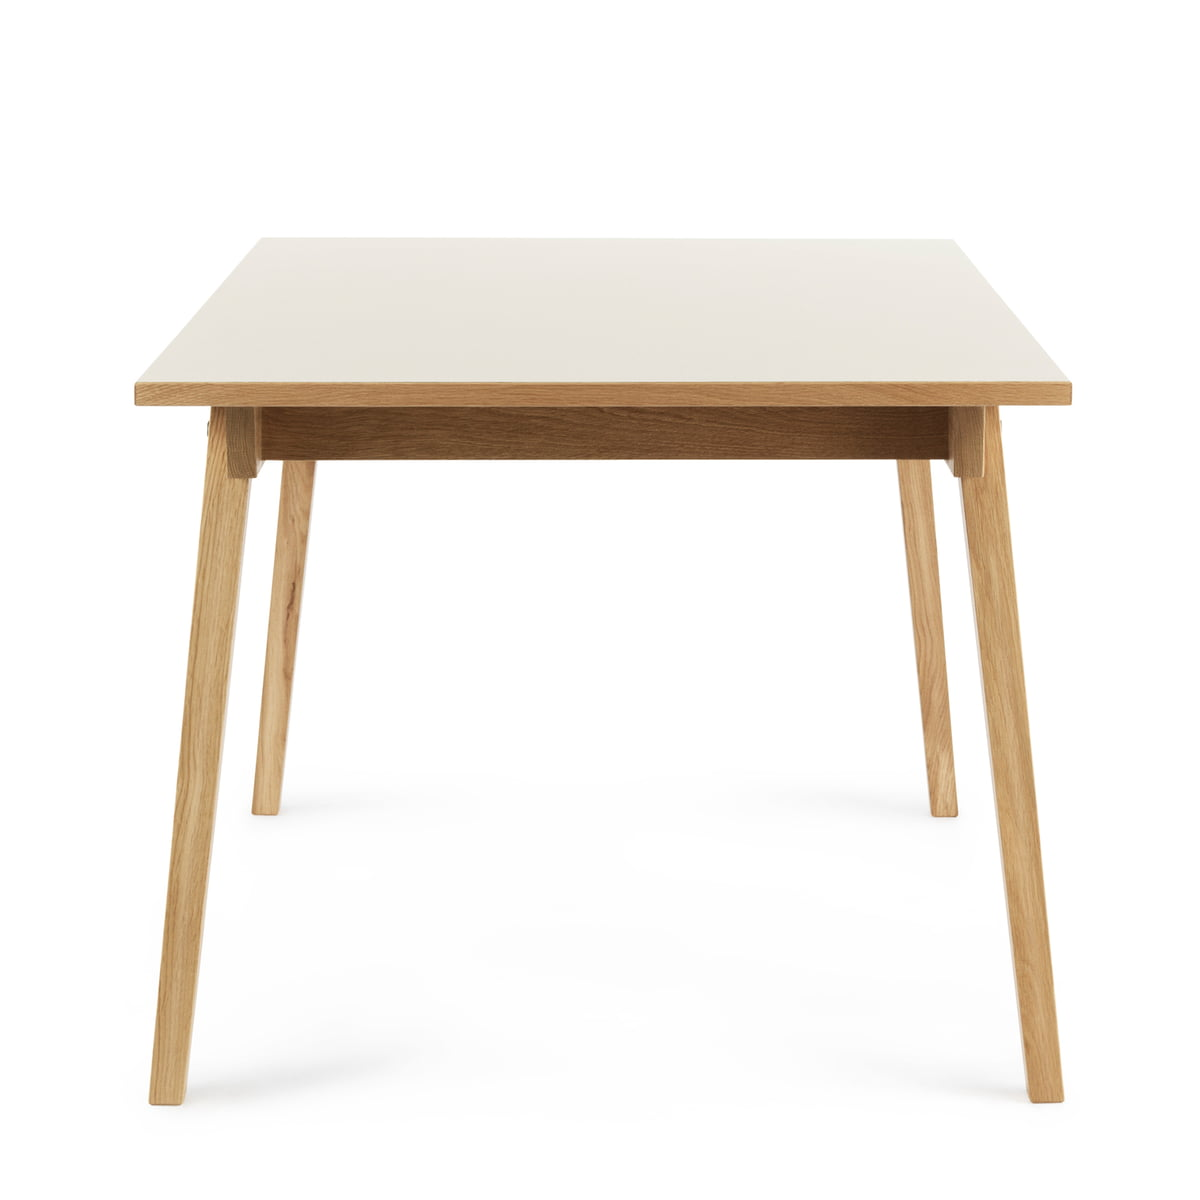 Slice table linoleum 90 x 200 cm by normann copenhagen for Table design 90 cm